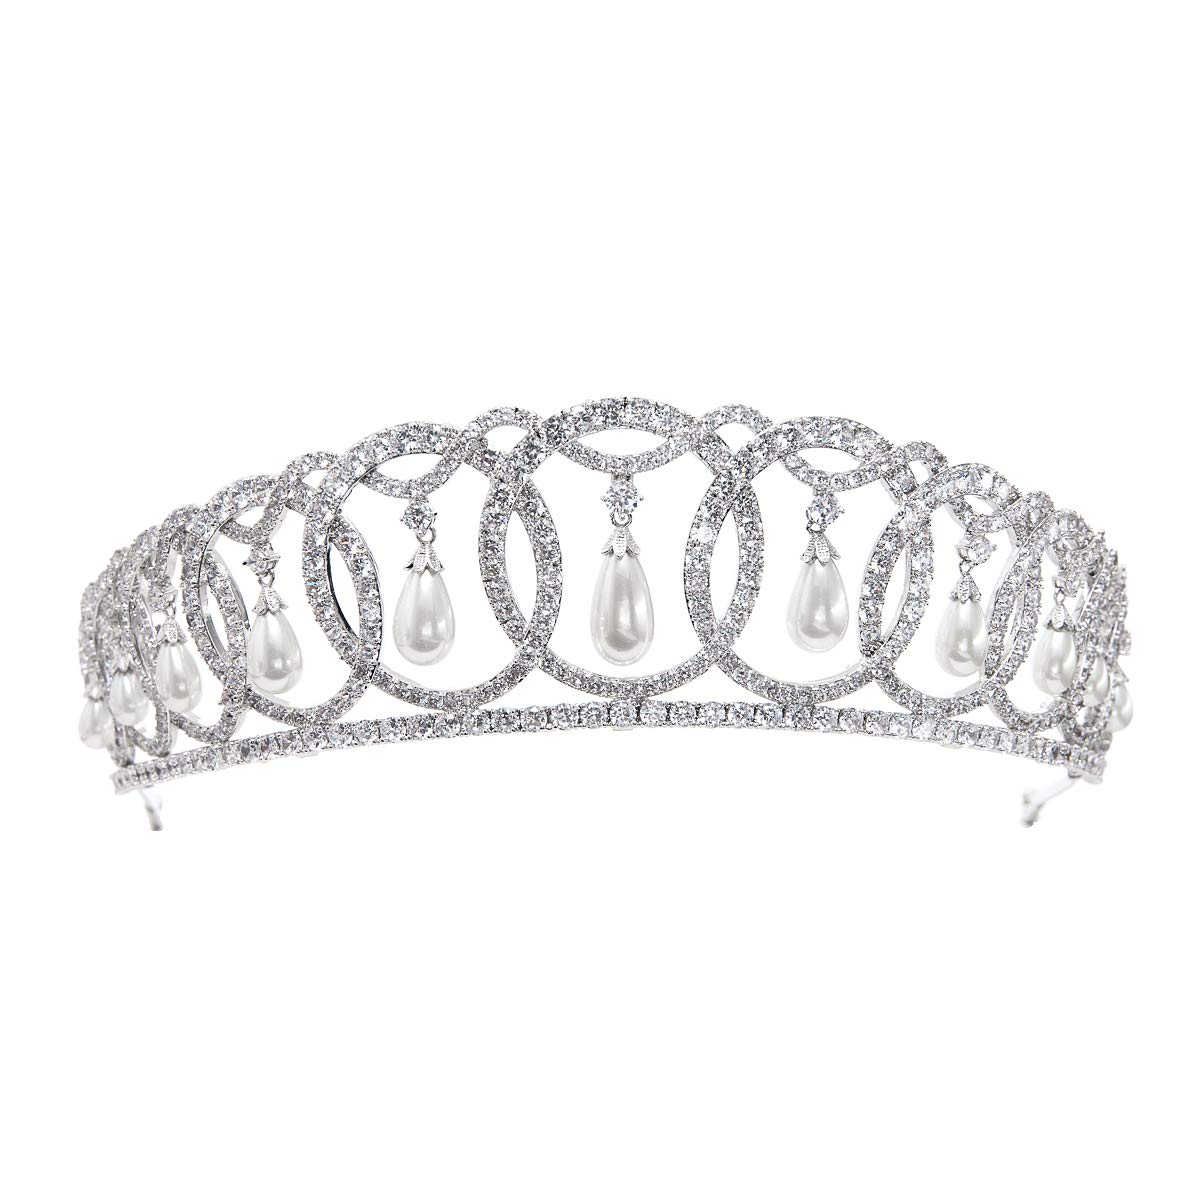 SepBridals Classic Cubic Zirconia CZ Pearls Wedding Bridal Tiara Crown Diadem Women Hair Accessories CH10223 by SEPBRIDALS (Image #1)